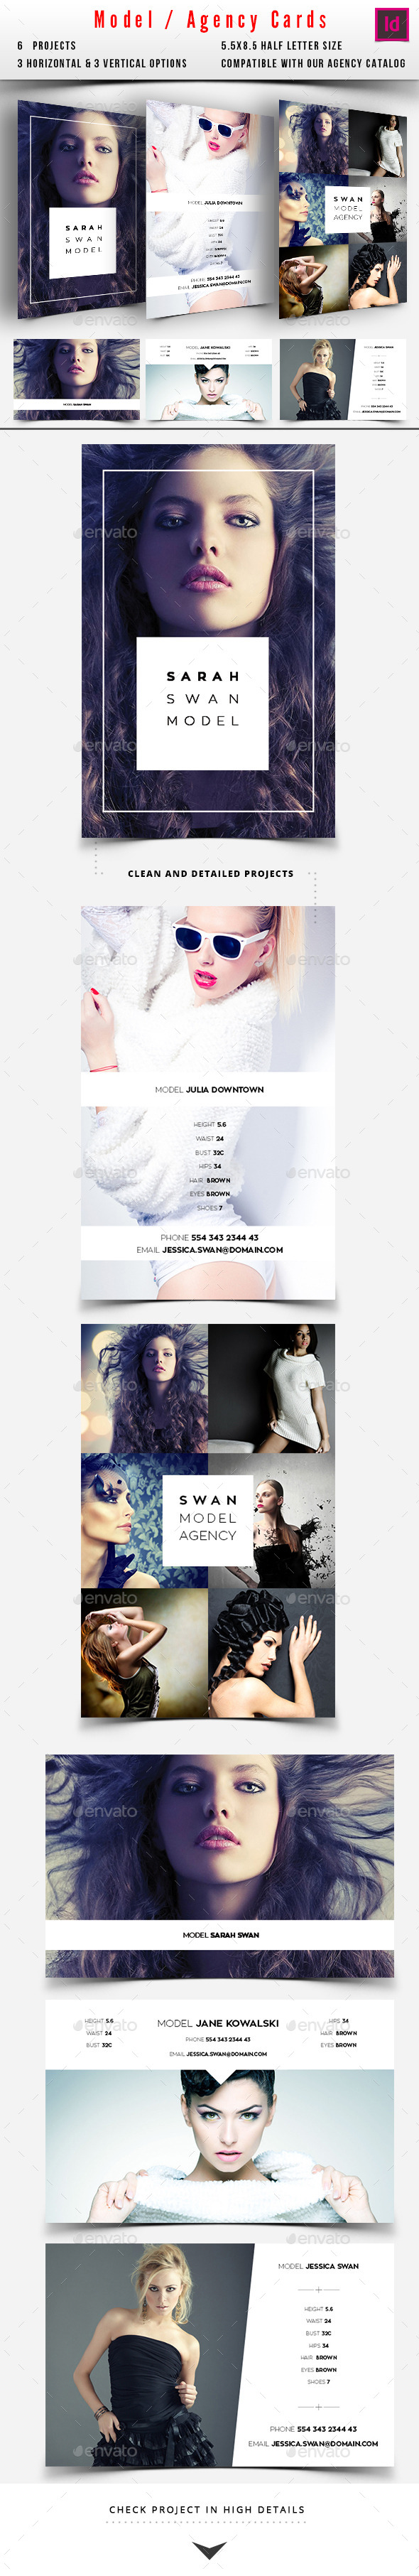 GraphicRiver Model Agency Comp Card 10335994